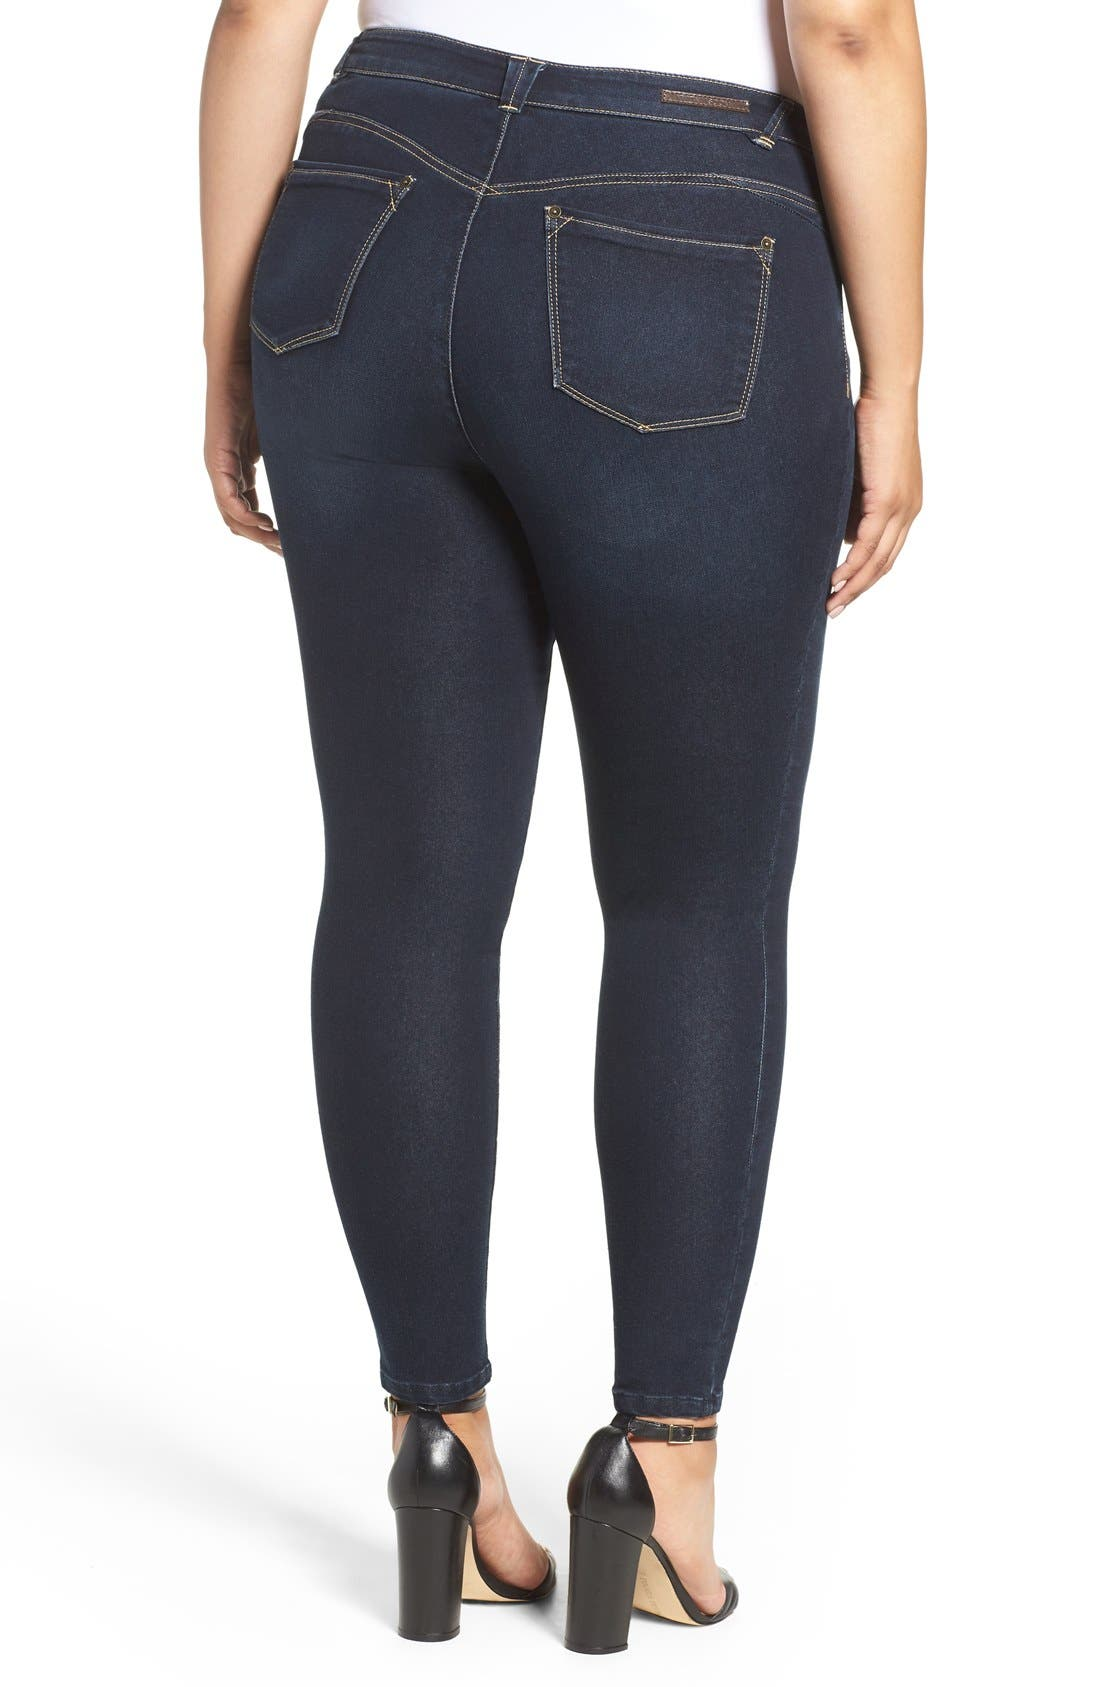 Alternate Image 2  - Wit & Wisdom Stretch Skinny Jeans (Plus Size) (Nordstrom Exclusive)